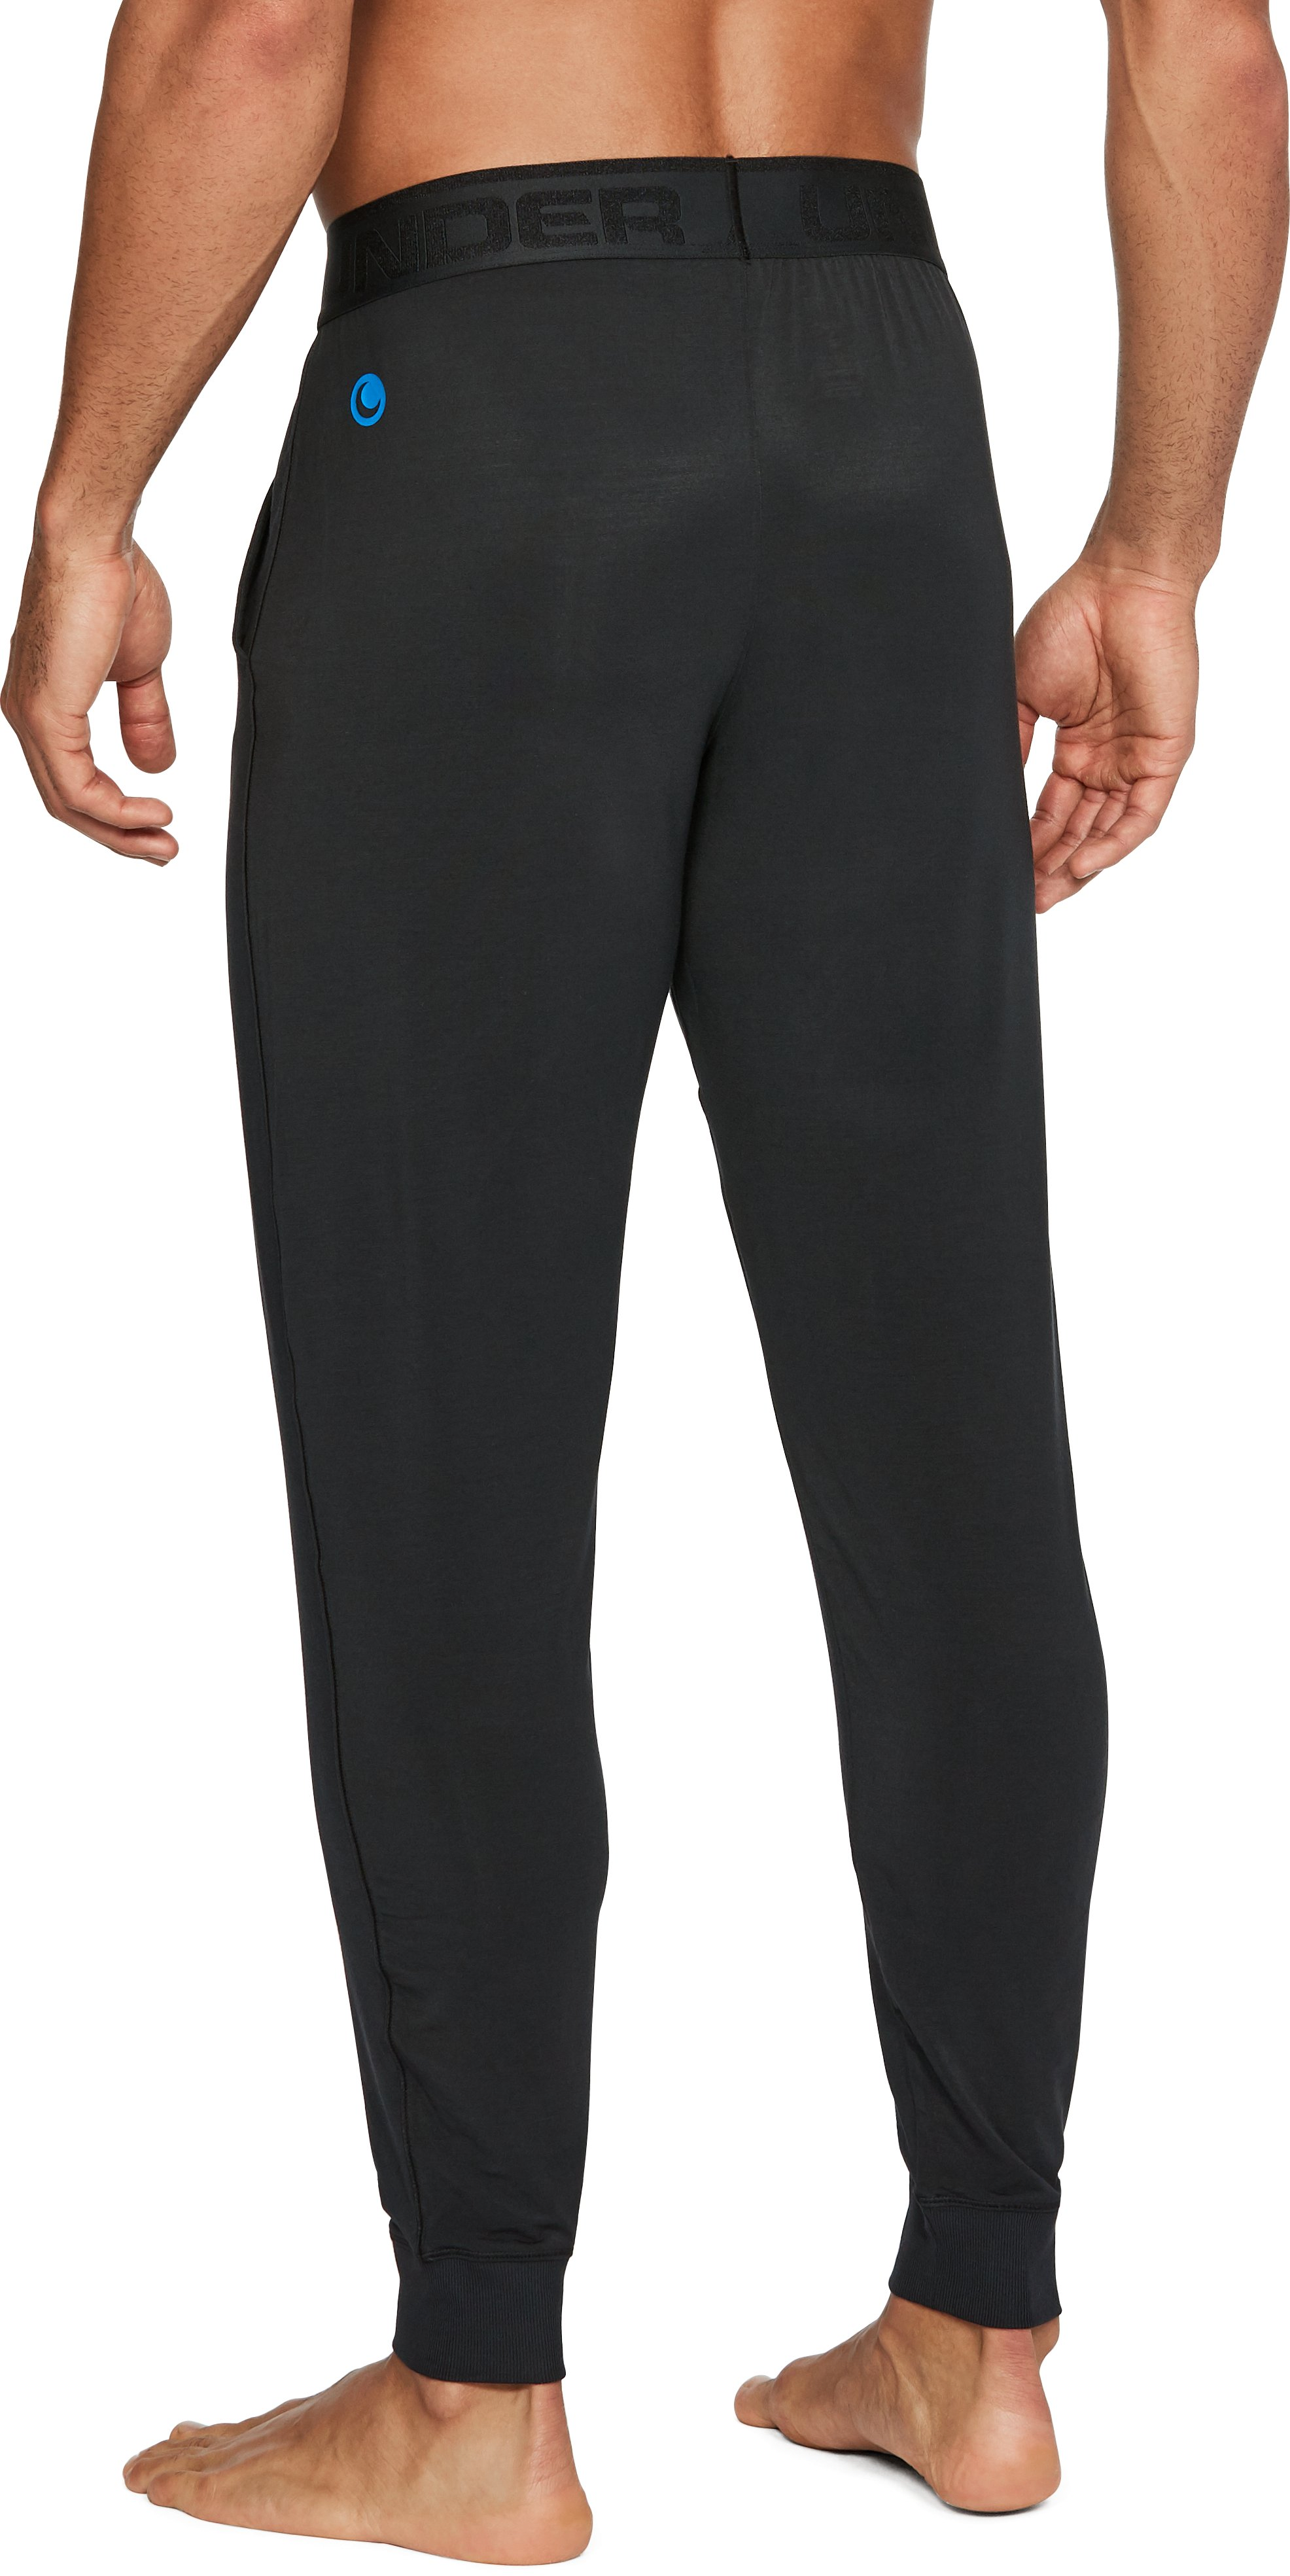 Men's Athlete Recovery Ultra Comfort Sleepwear Pants, Black ,